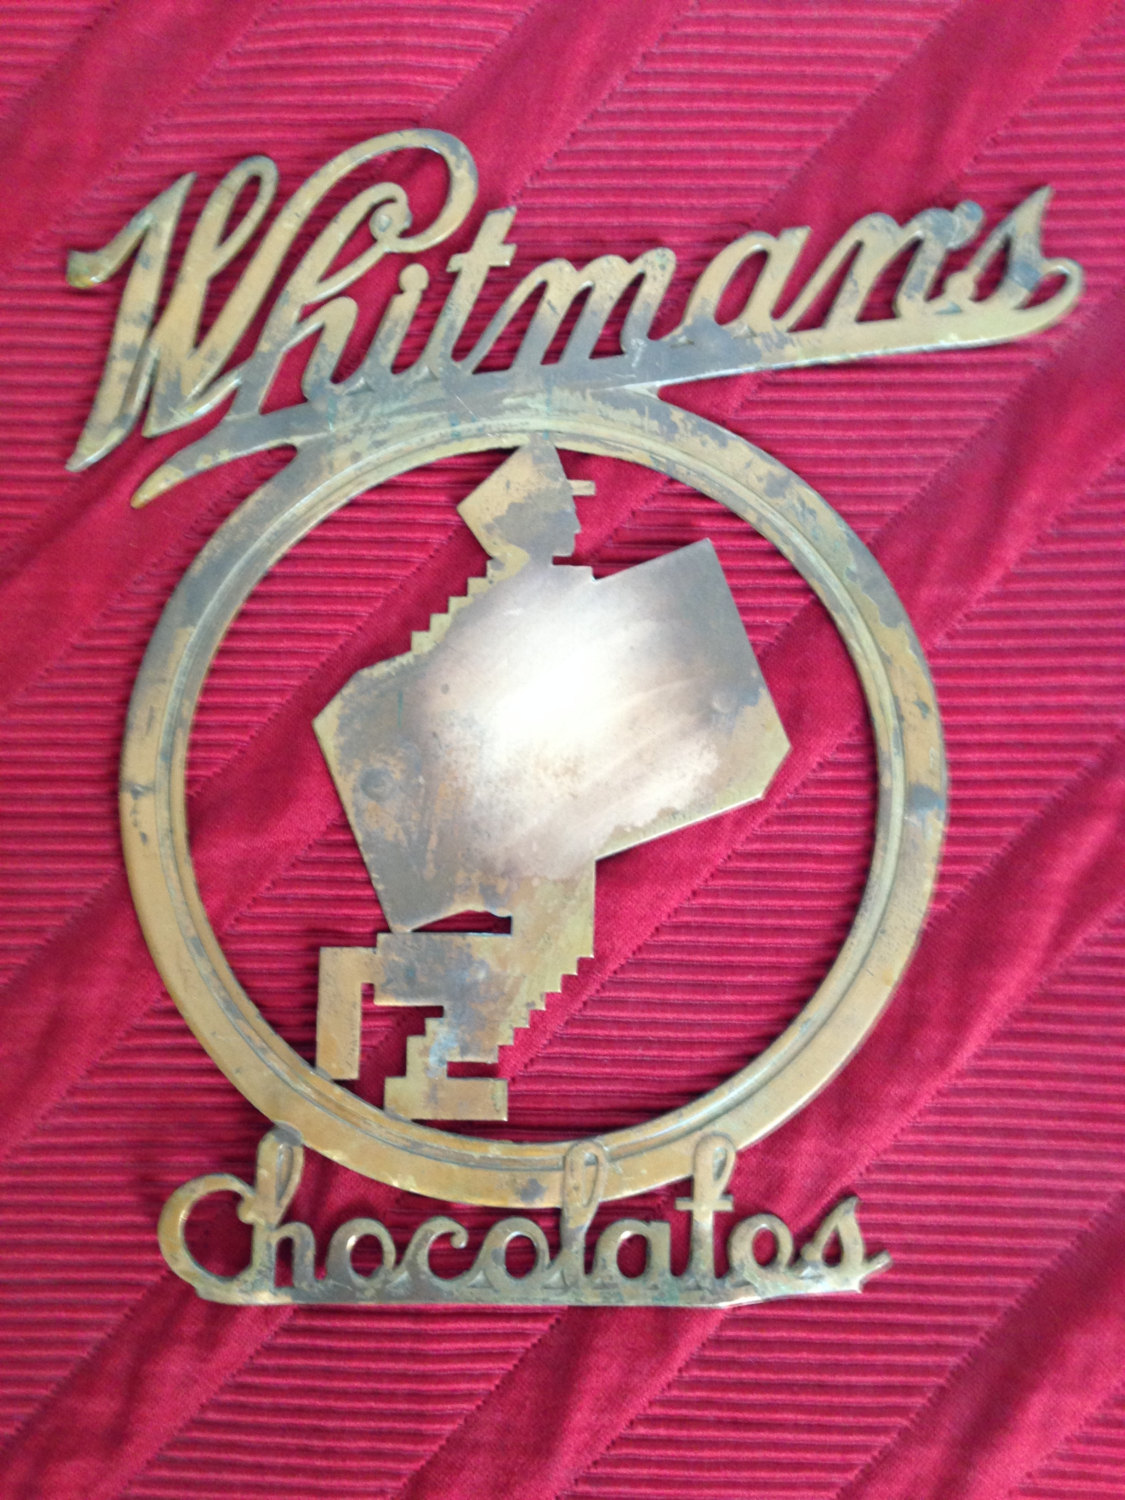 Rare, Vintage Whitman's Ad Sign